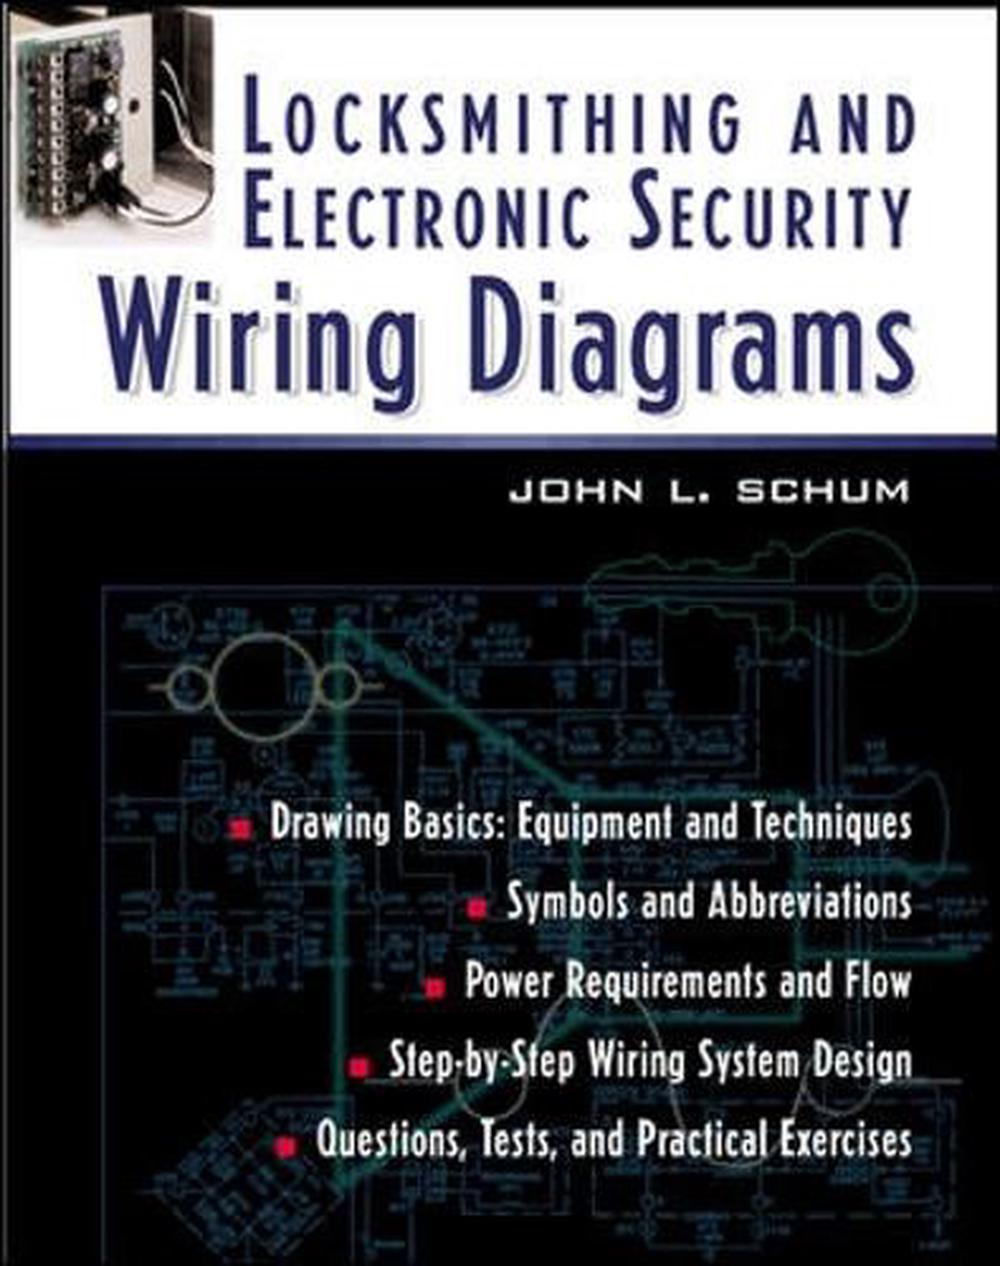 details about locksmithing and electronic security wiring diagrams by j l schum english pap [ 1000 x 1266 Pixel ]